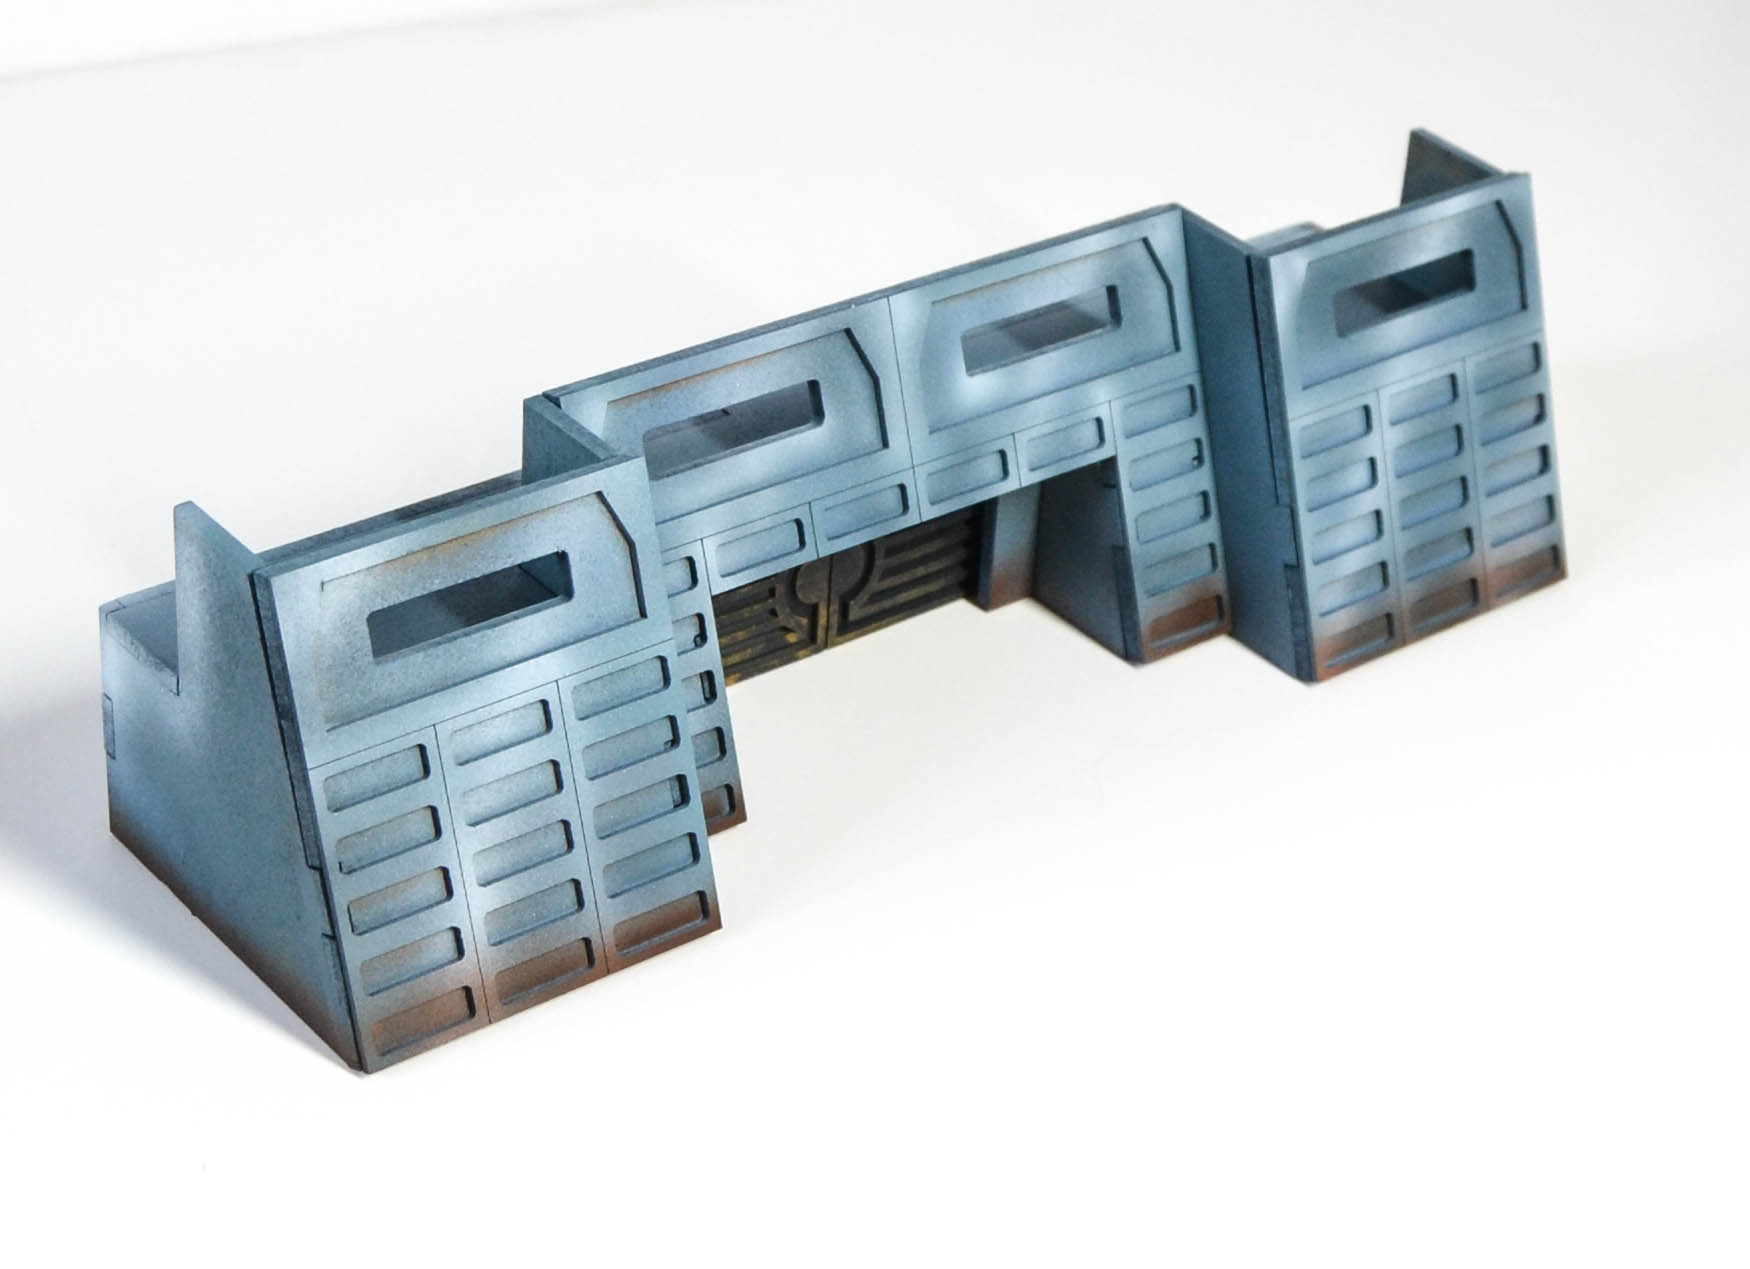 DROPSHIP HORIZON: Multiverse Gaming releases new MDF Terrain